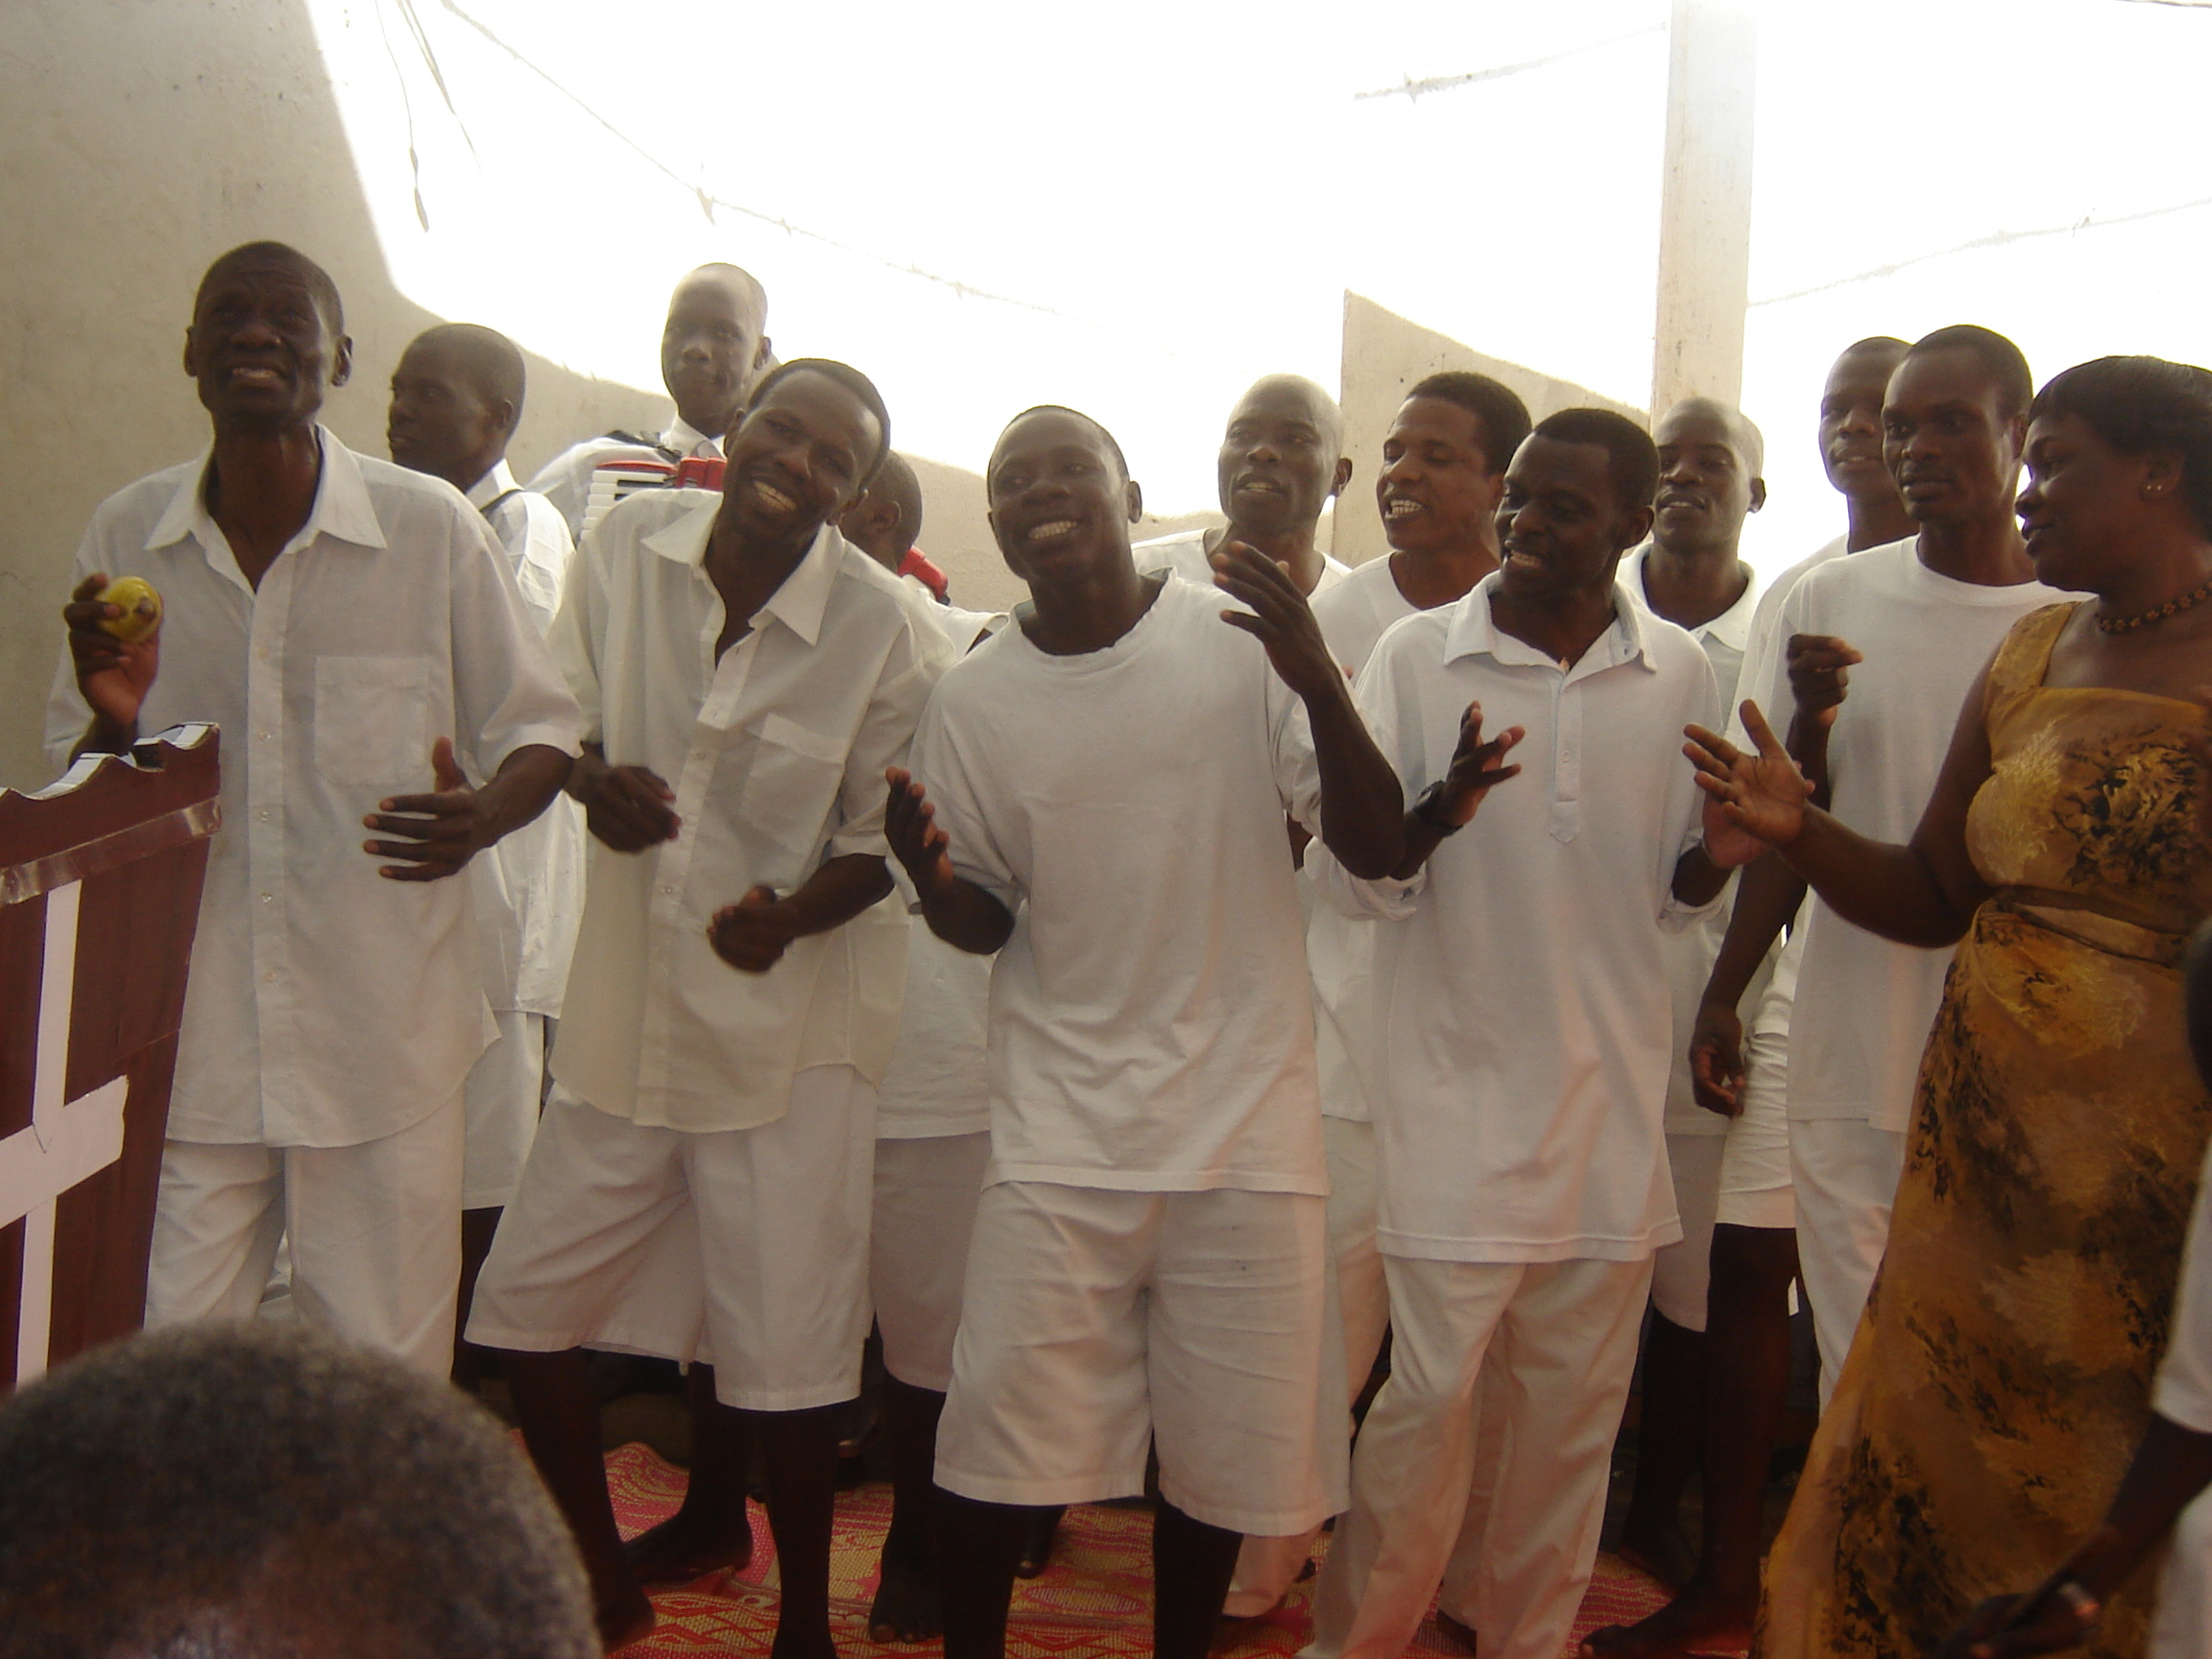 The best Choir on earth! Death Row Inmates